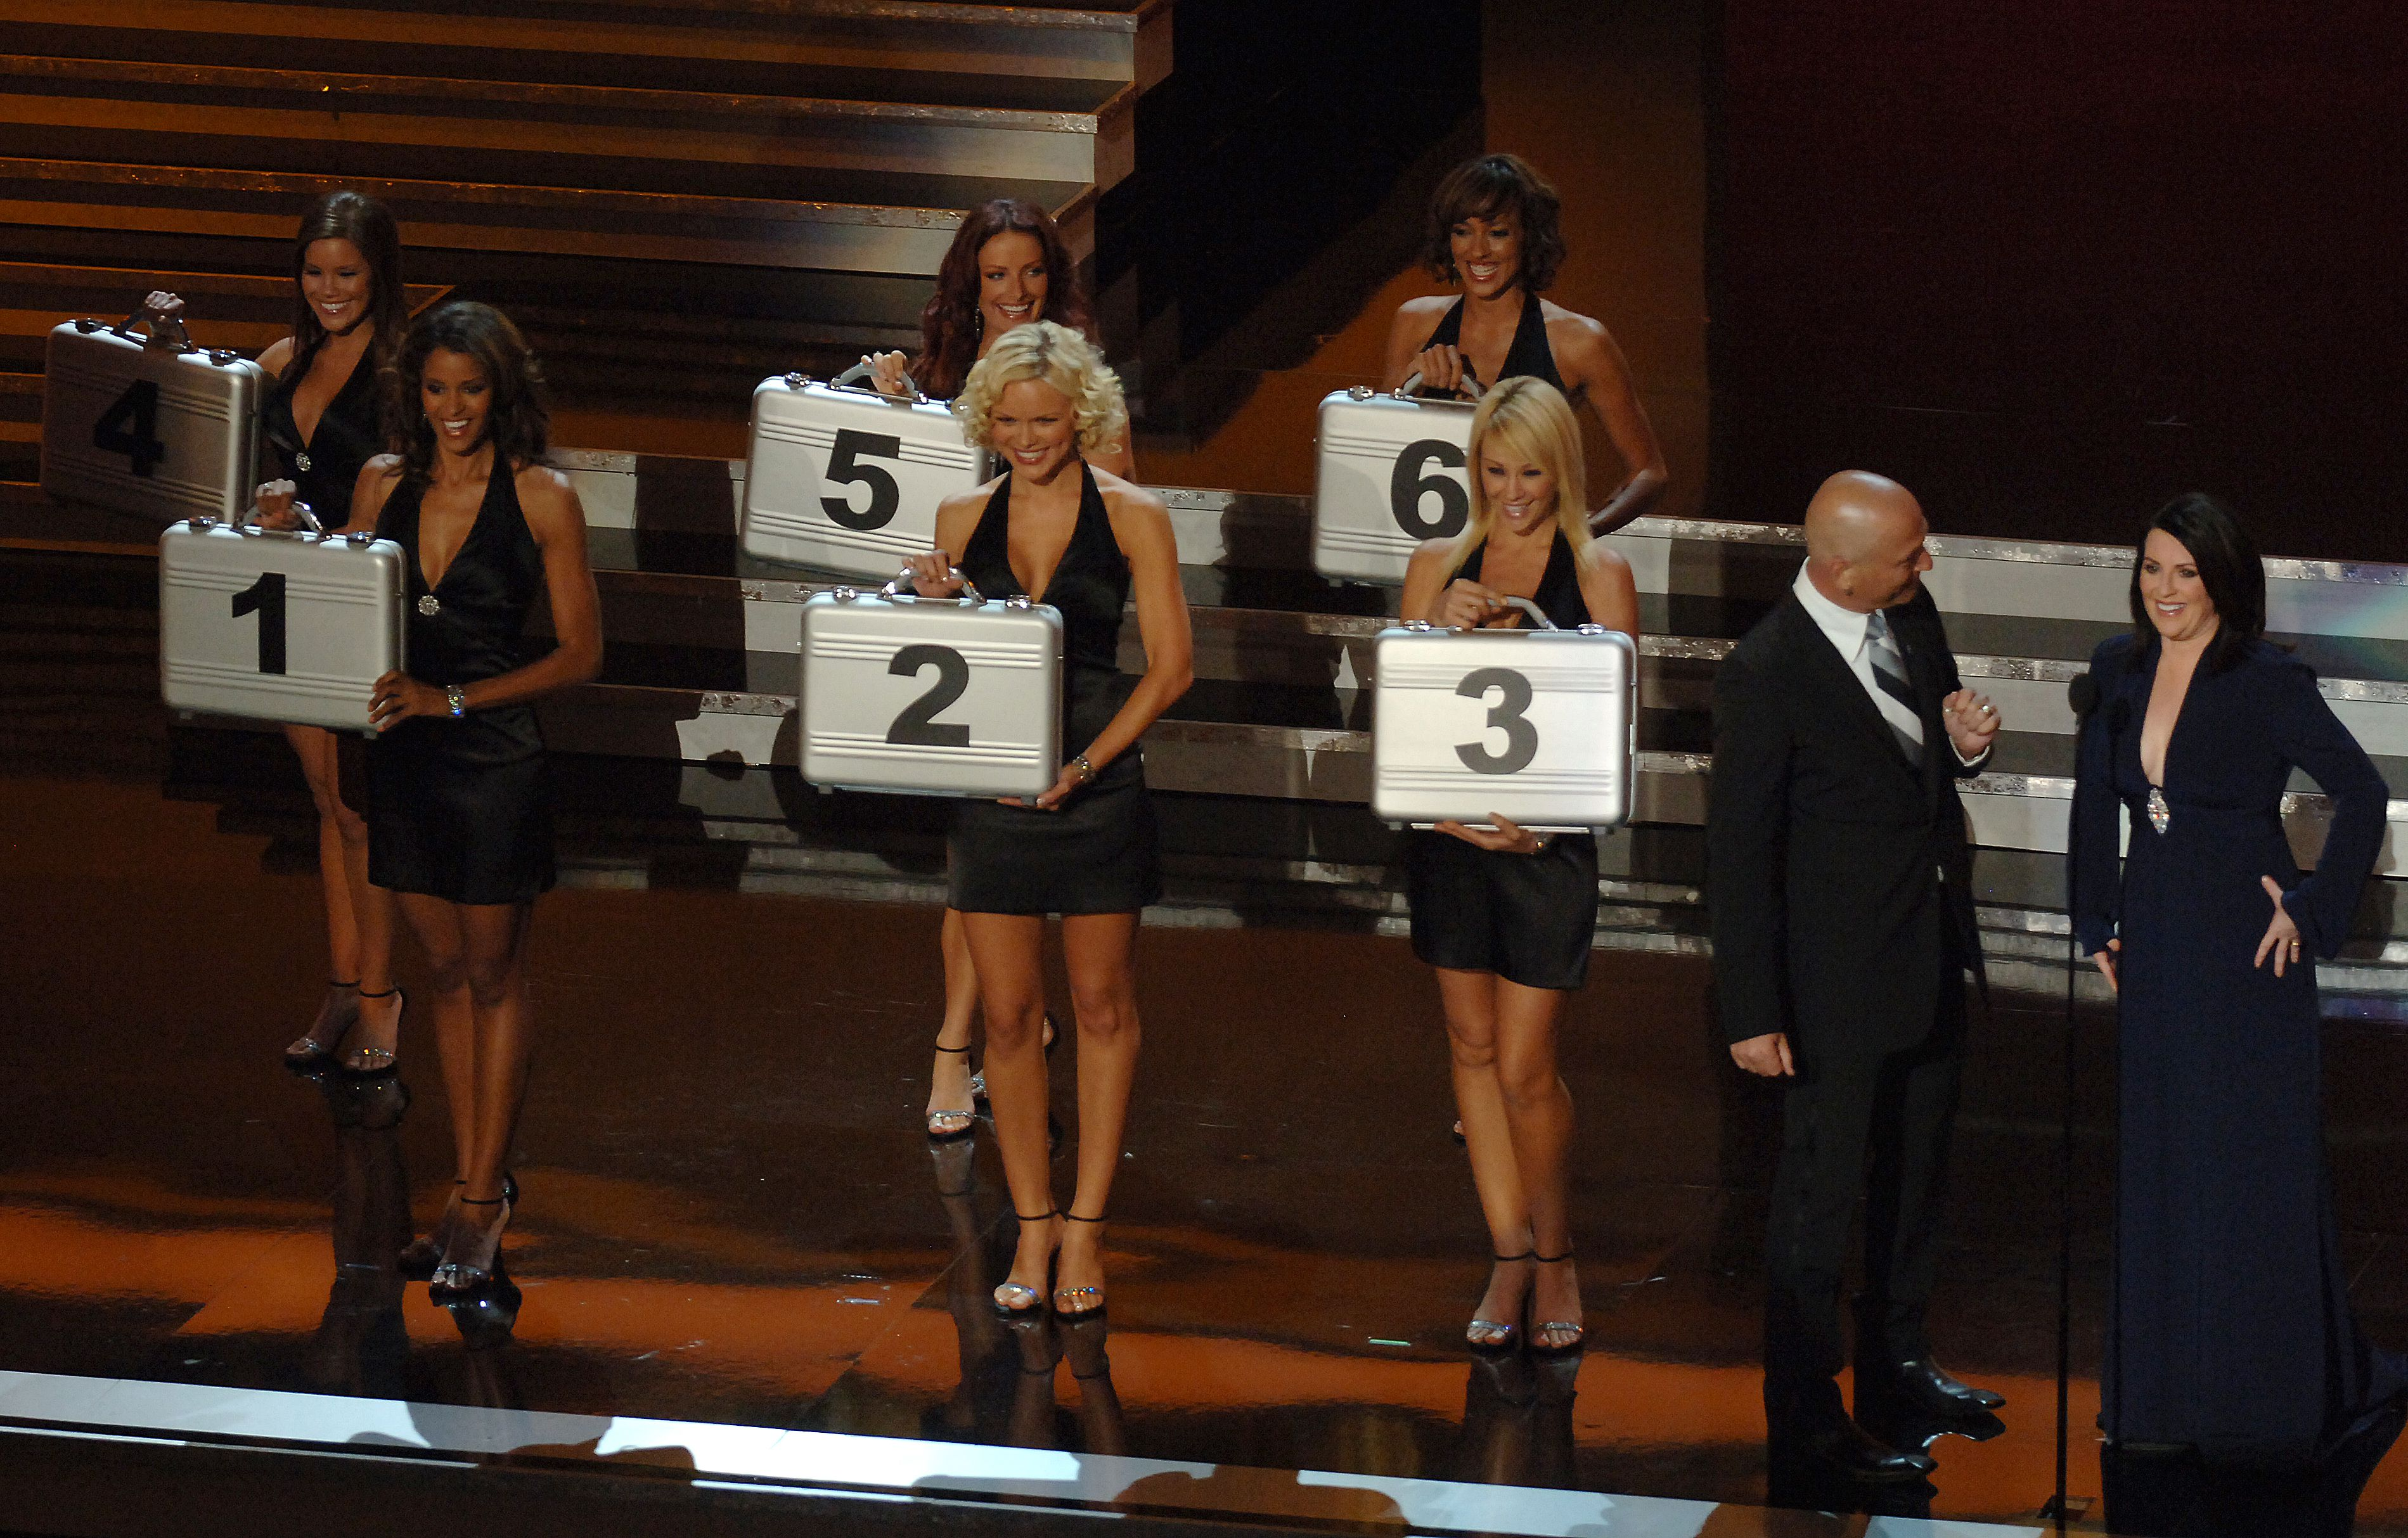 Howie Mandel, Megan Mullally and The women from 'Deal or No Deal' at the Shrine Auditorium in Los Angeles, California